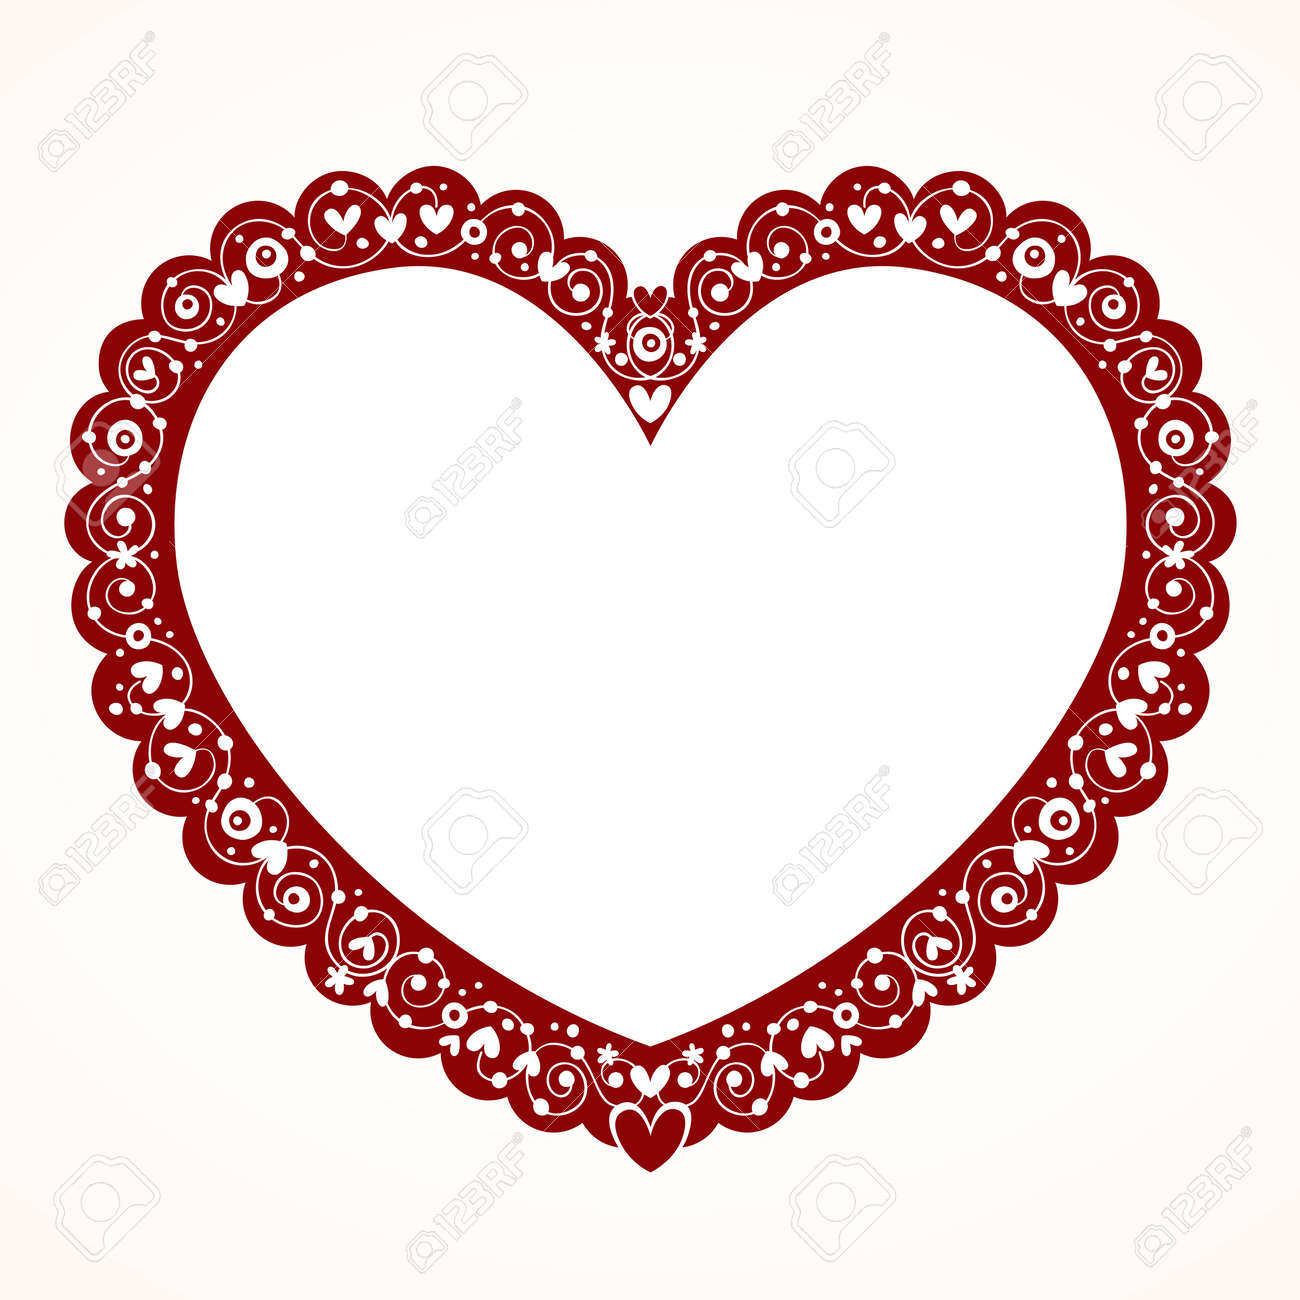 Valentine Heart Frame Royalty Free Cliparts, Vectors, And Stock ...